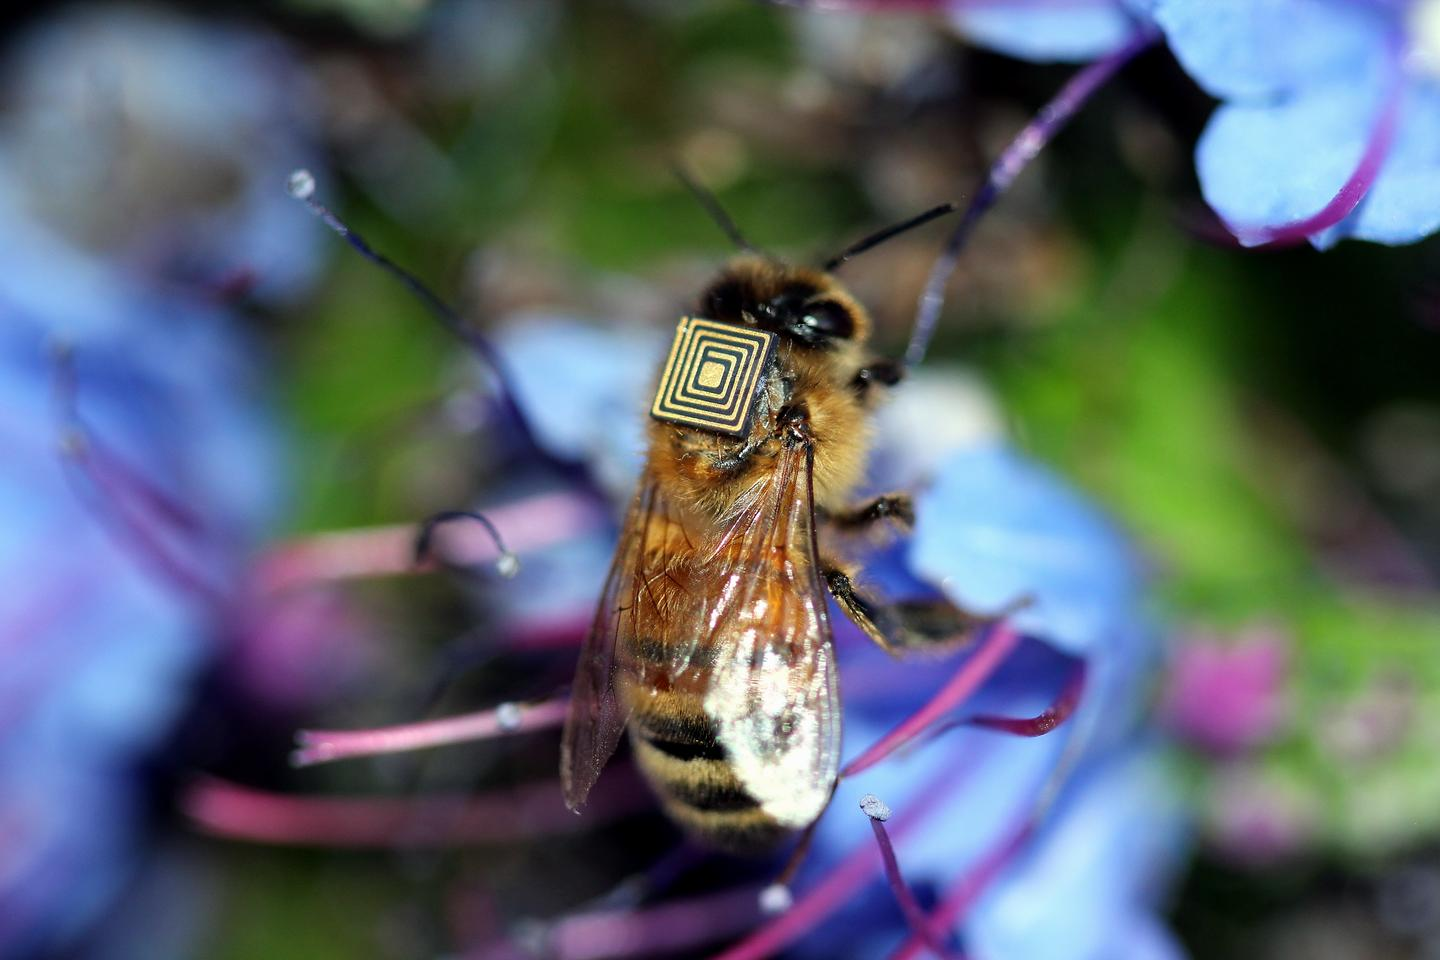 The flat, square tags measure 2.5 mm per side, and are being affixed with adhesive to the backs of bees in Hobart, Tasmania